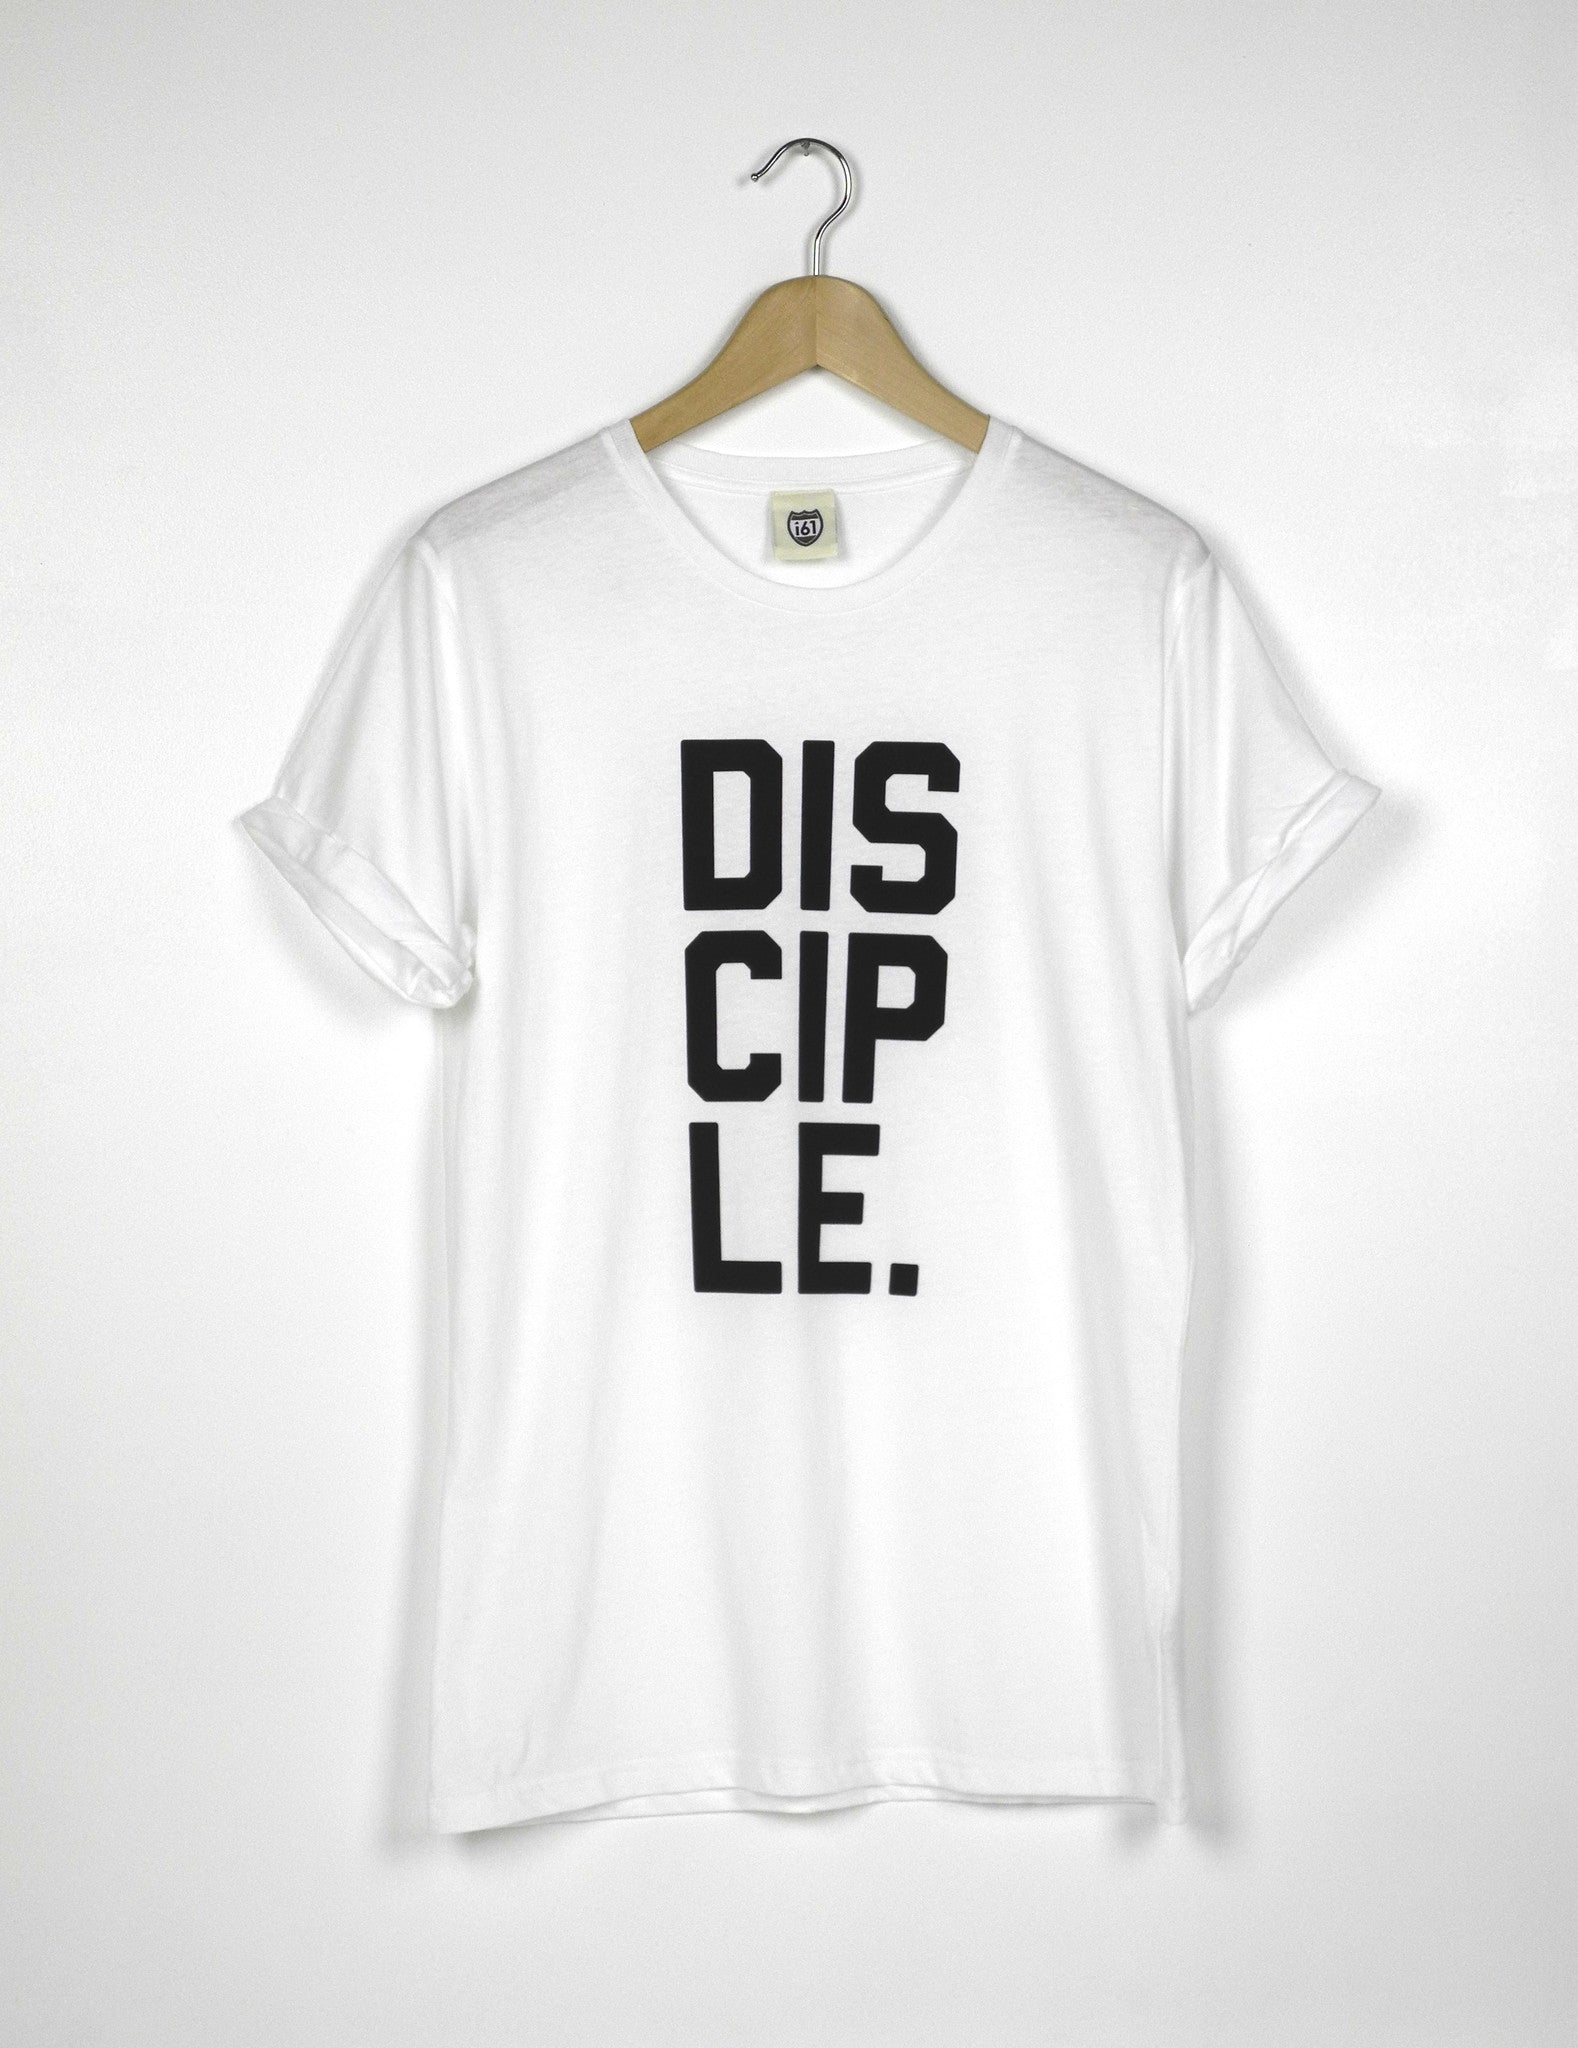 Disciple - Ethical Organic Cotton Rolled Sleeve Women's T-Shirt